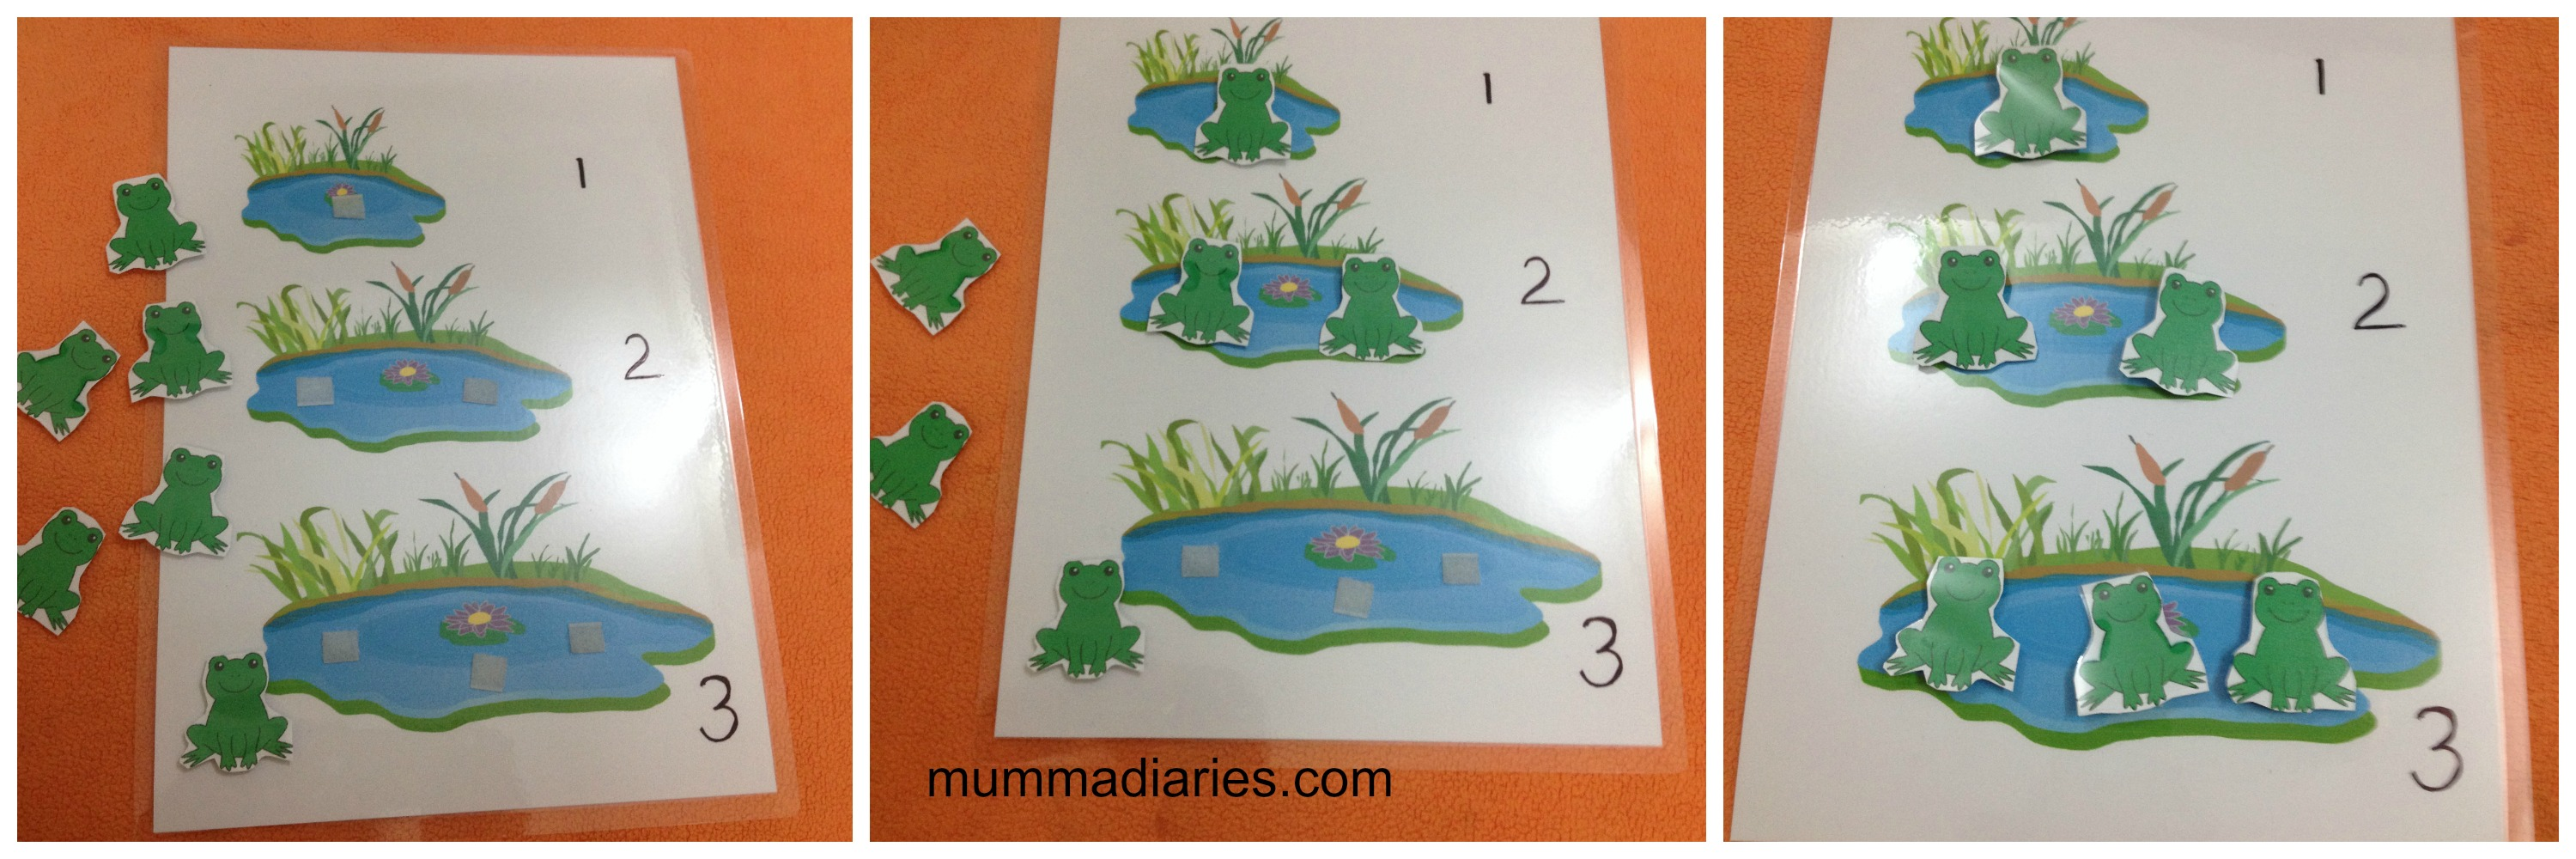 ... color printed and laminated the sheets. The frogs are laminated as